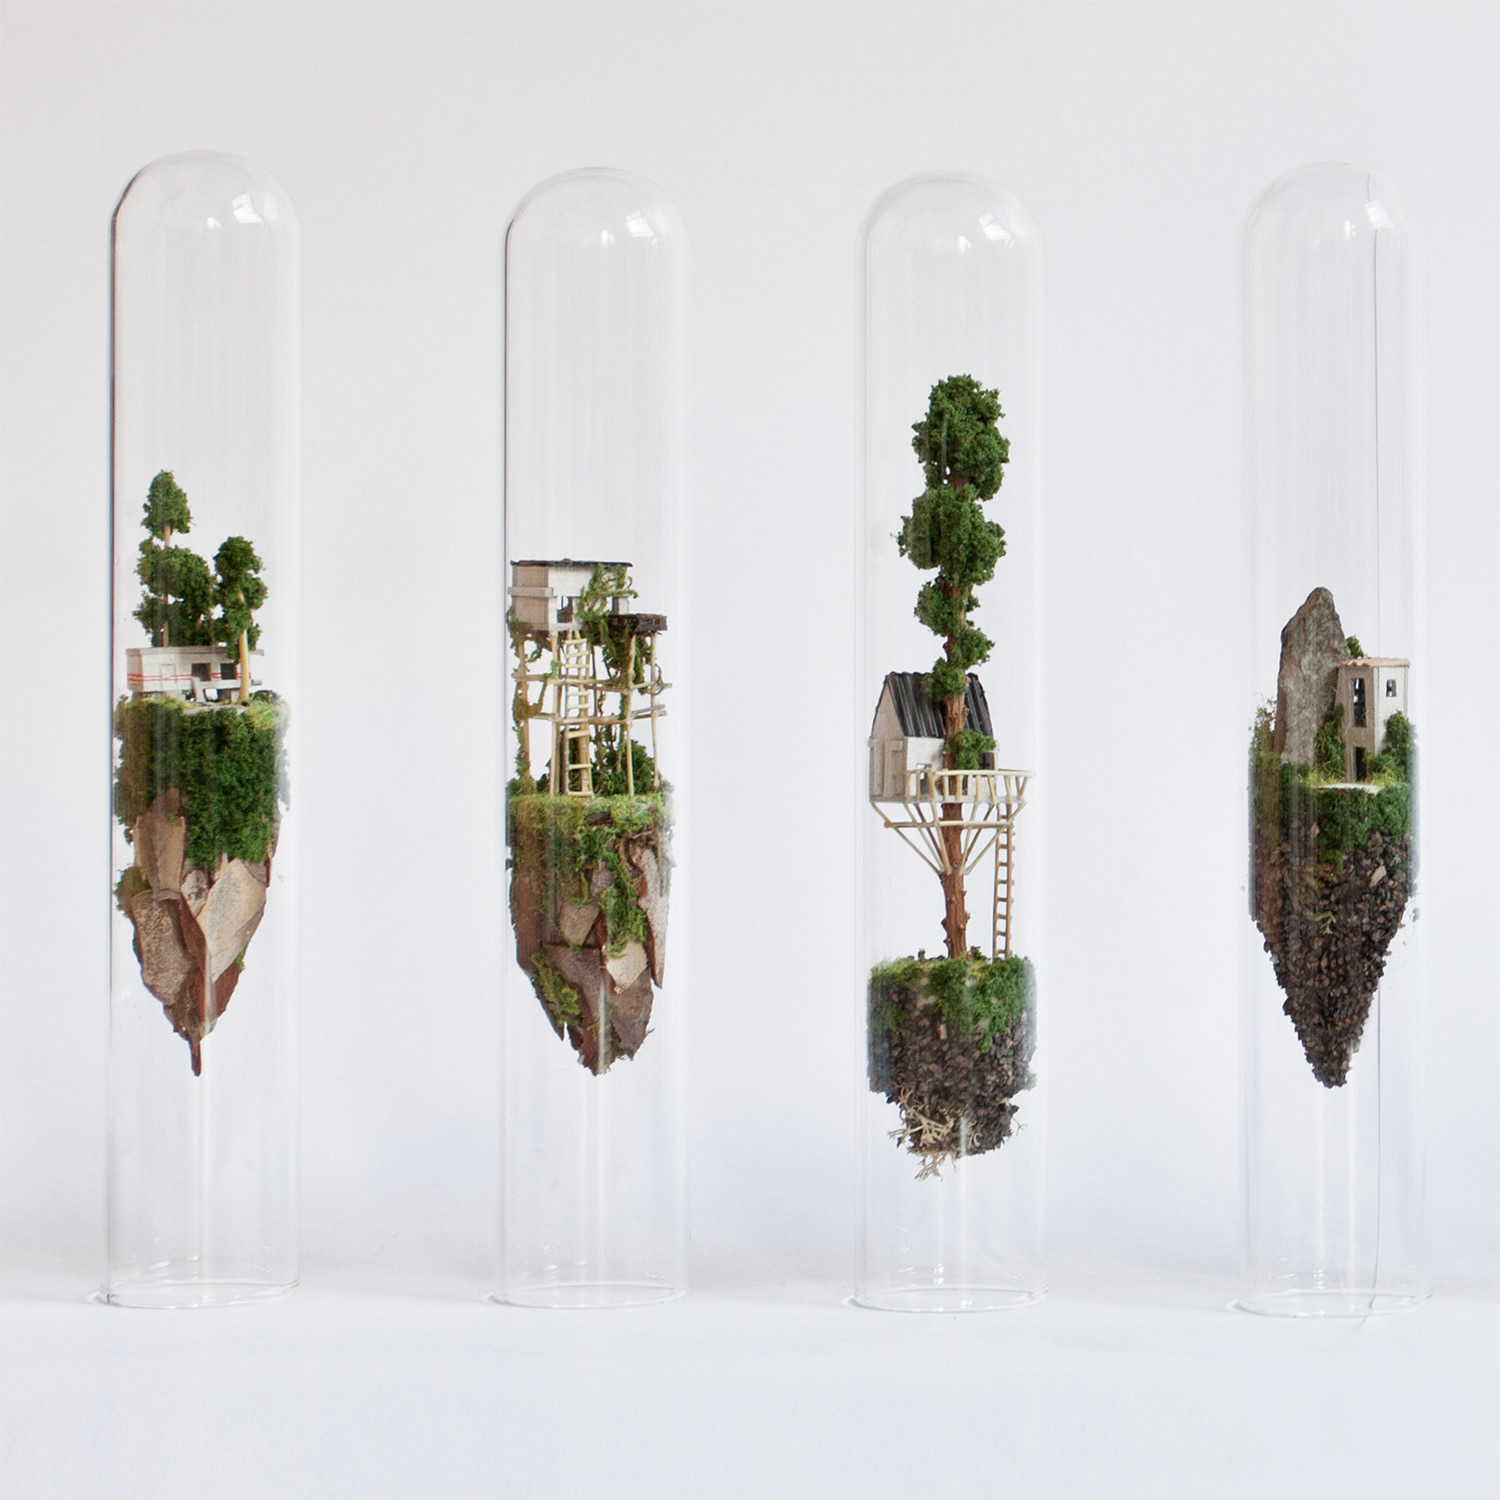 miniature sculptures in glass test tubes